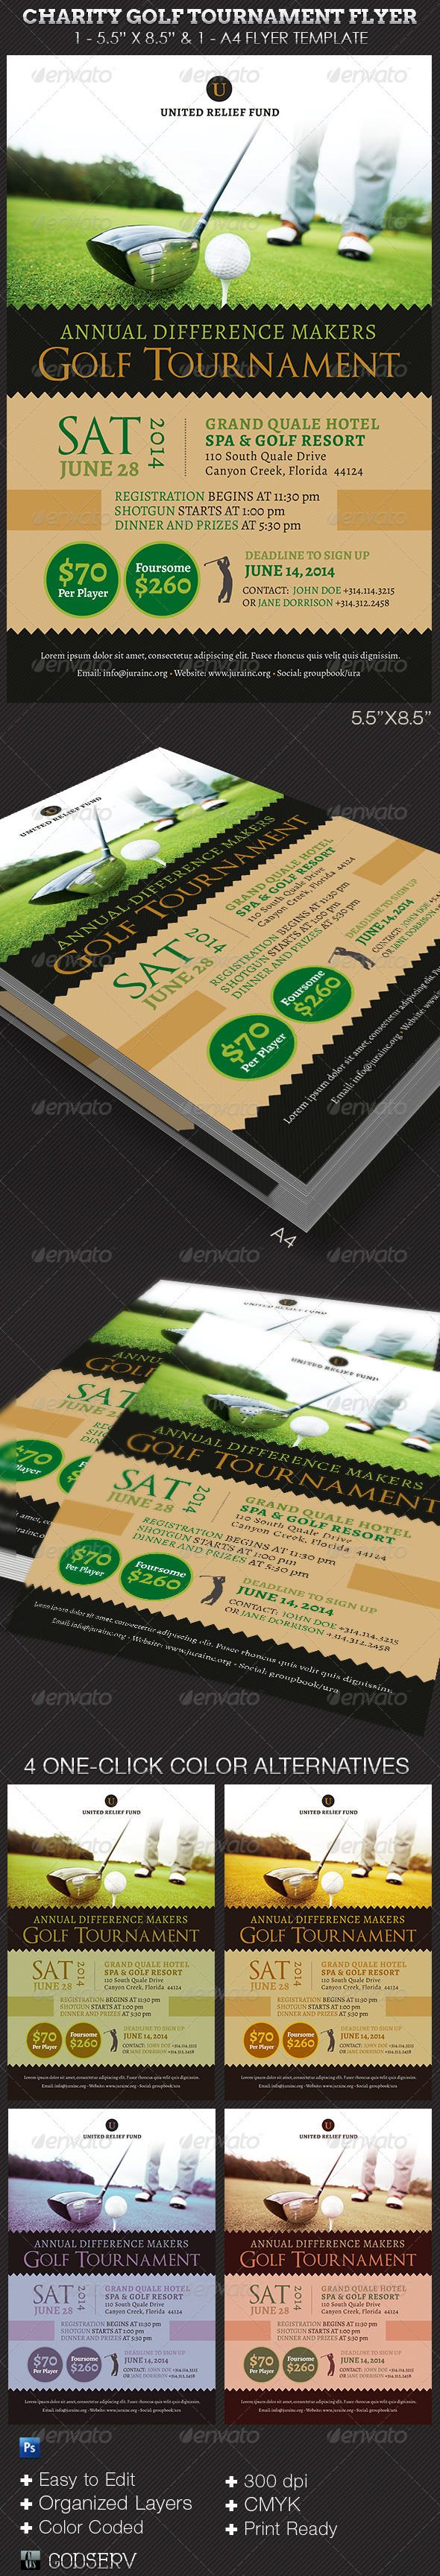 Charity Golf Tournament Flyer Template by Michael Taylor, via Behance